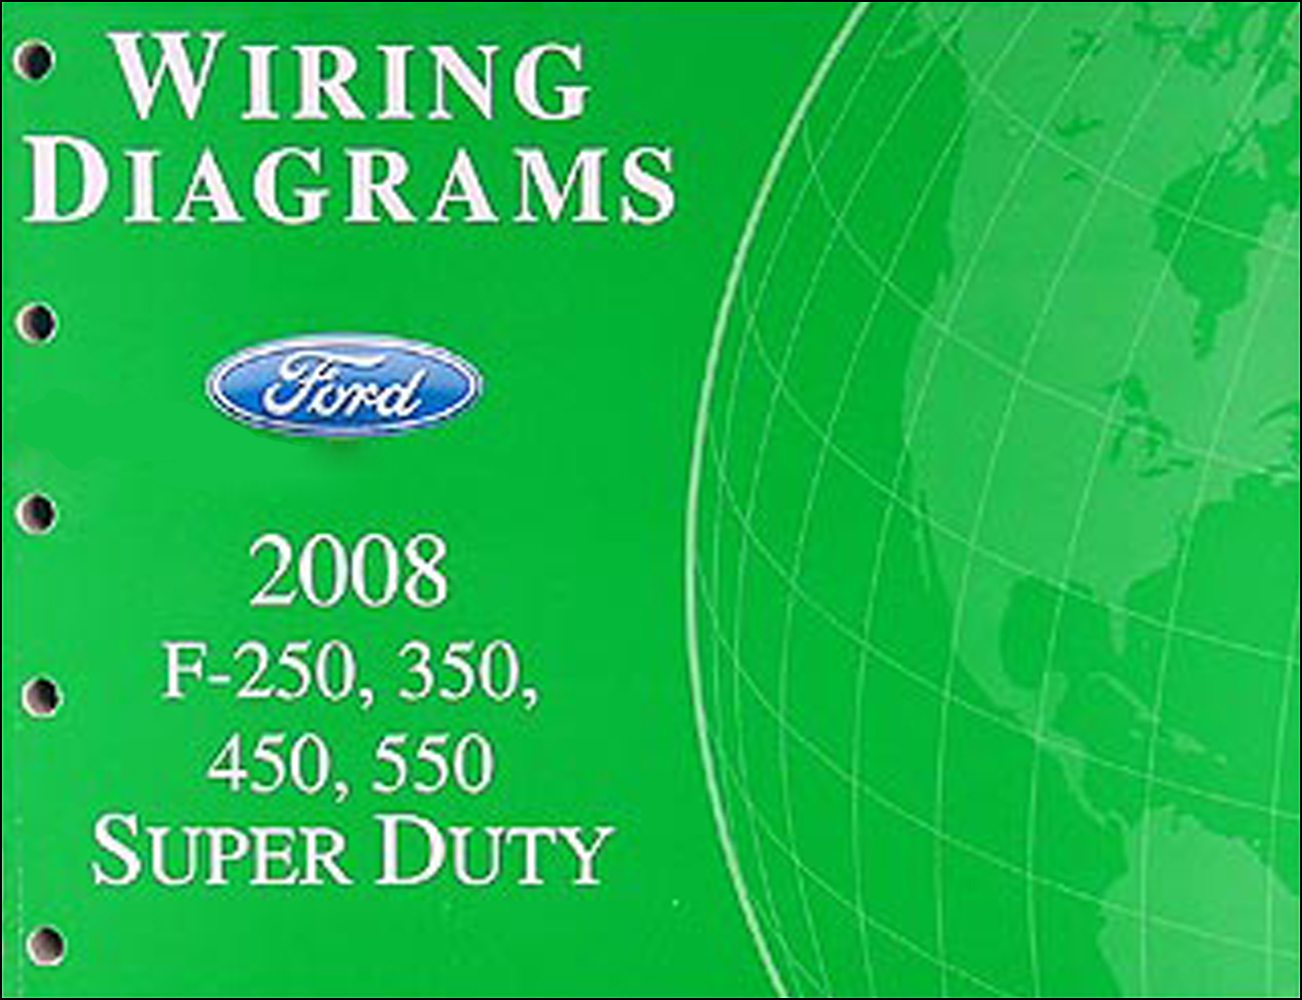 2008 Ford F-250 thru 550 Super Duty Wiring Diagram Manual OriginalFaxon Auto Literature